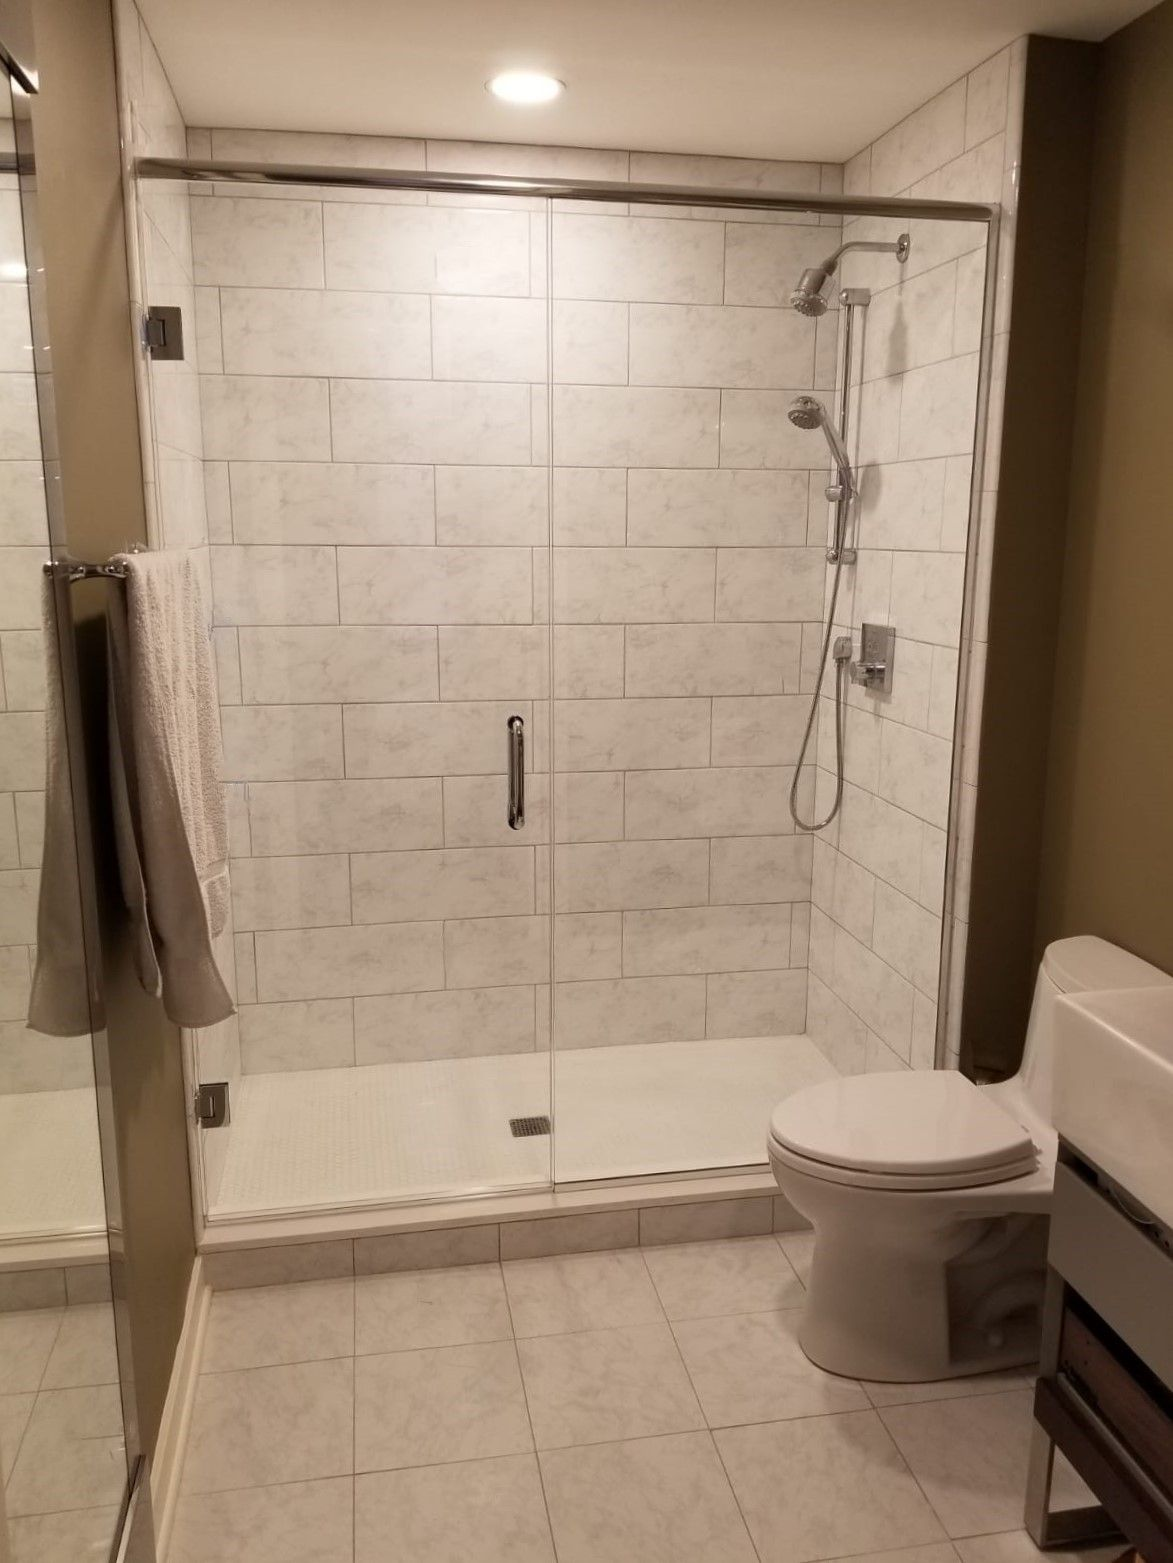 Towel Hook Through The Glass Mount With Images Shower Doors